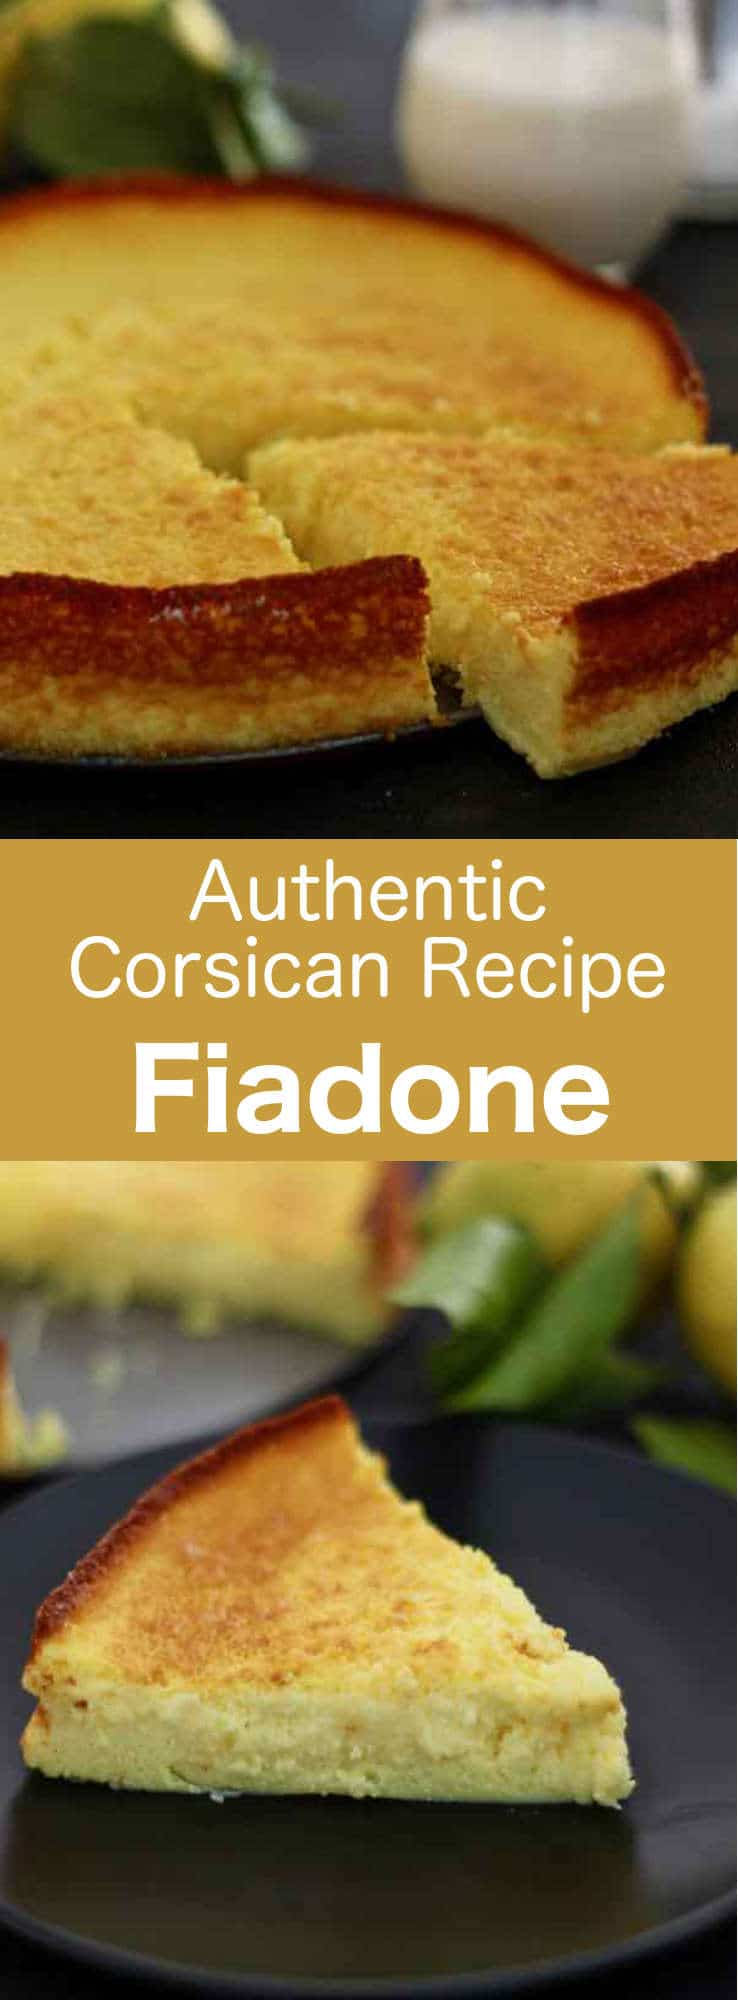 Fiadone is a cheesecake made with brocciu, a traditional cheese from Corsica. #vegetarian #dessert #cake #Corsica #France #WorldCuisine #196flavors